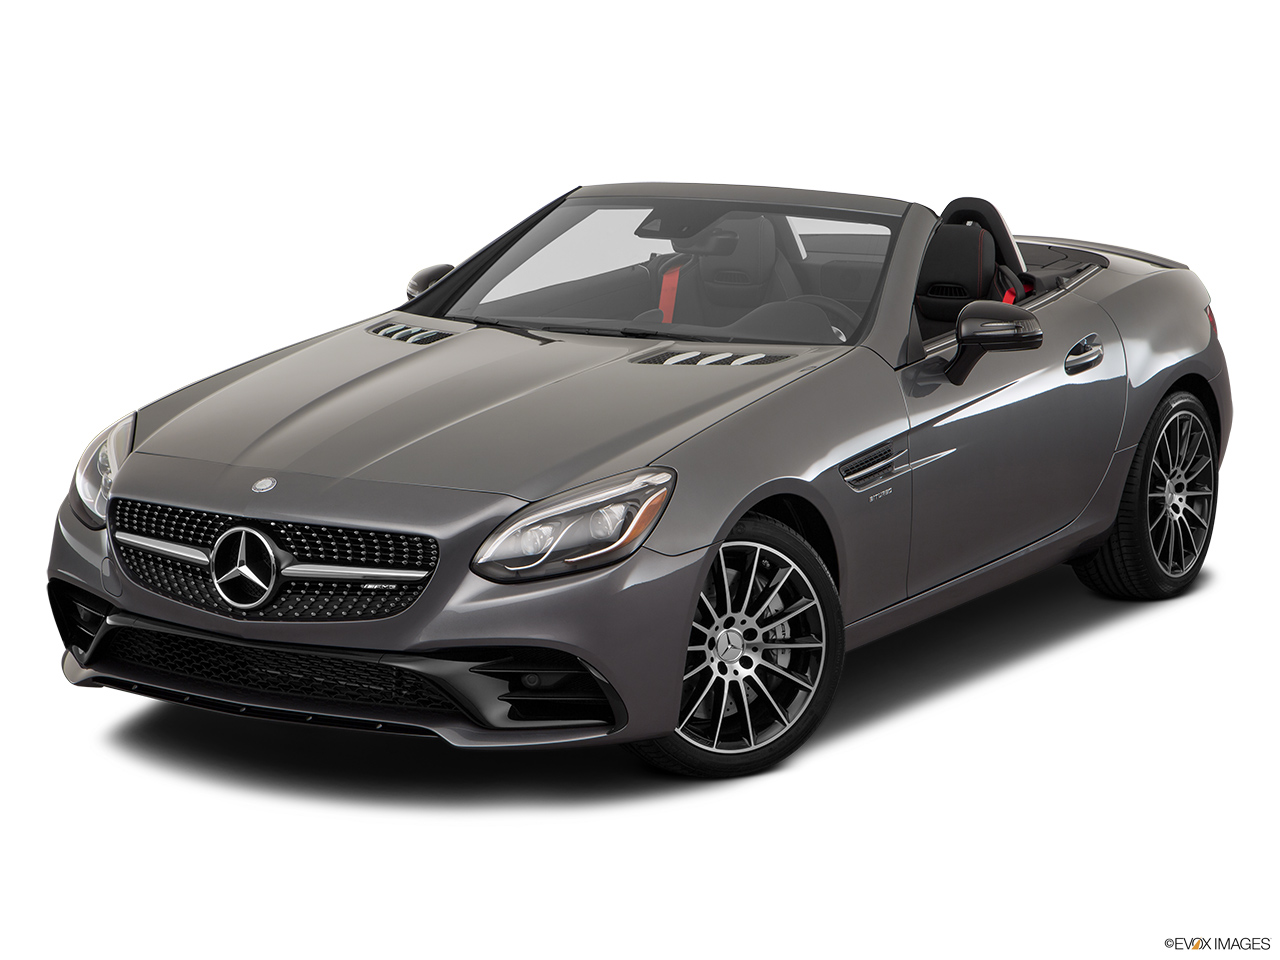 2018 mercedes benz slc prices in bahrain gulf specs for Mercedes benz bahrain